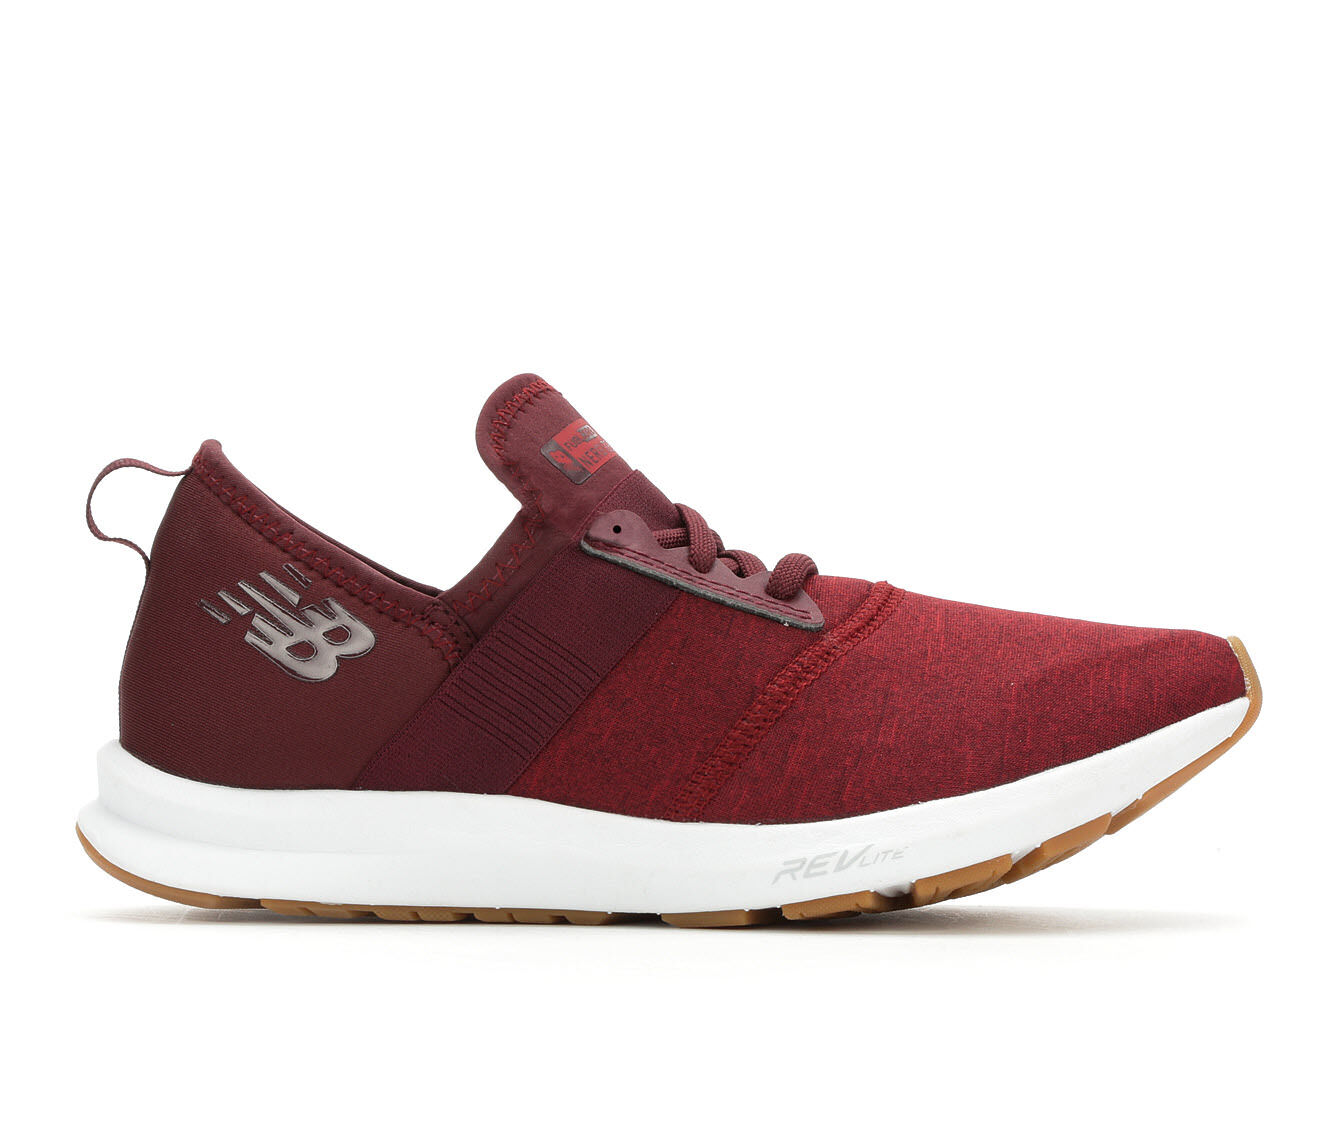 Women's New Balance FuelCore Nergize Sneakers Burgundy/Wht